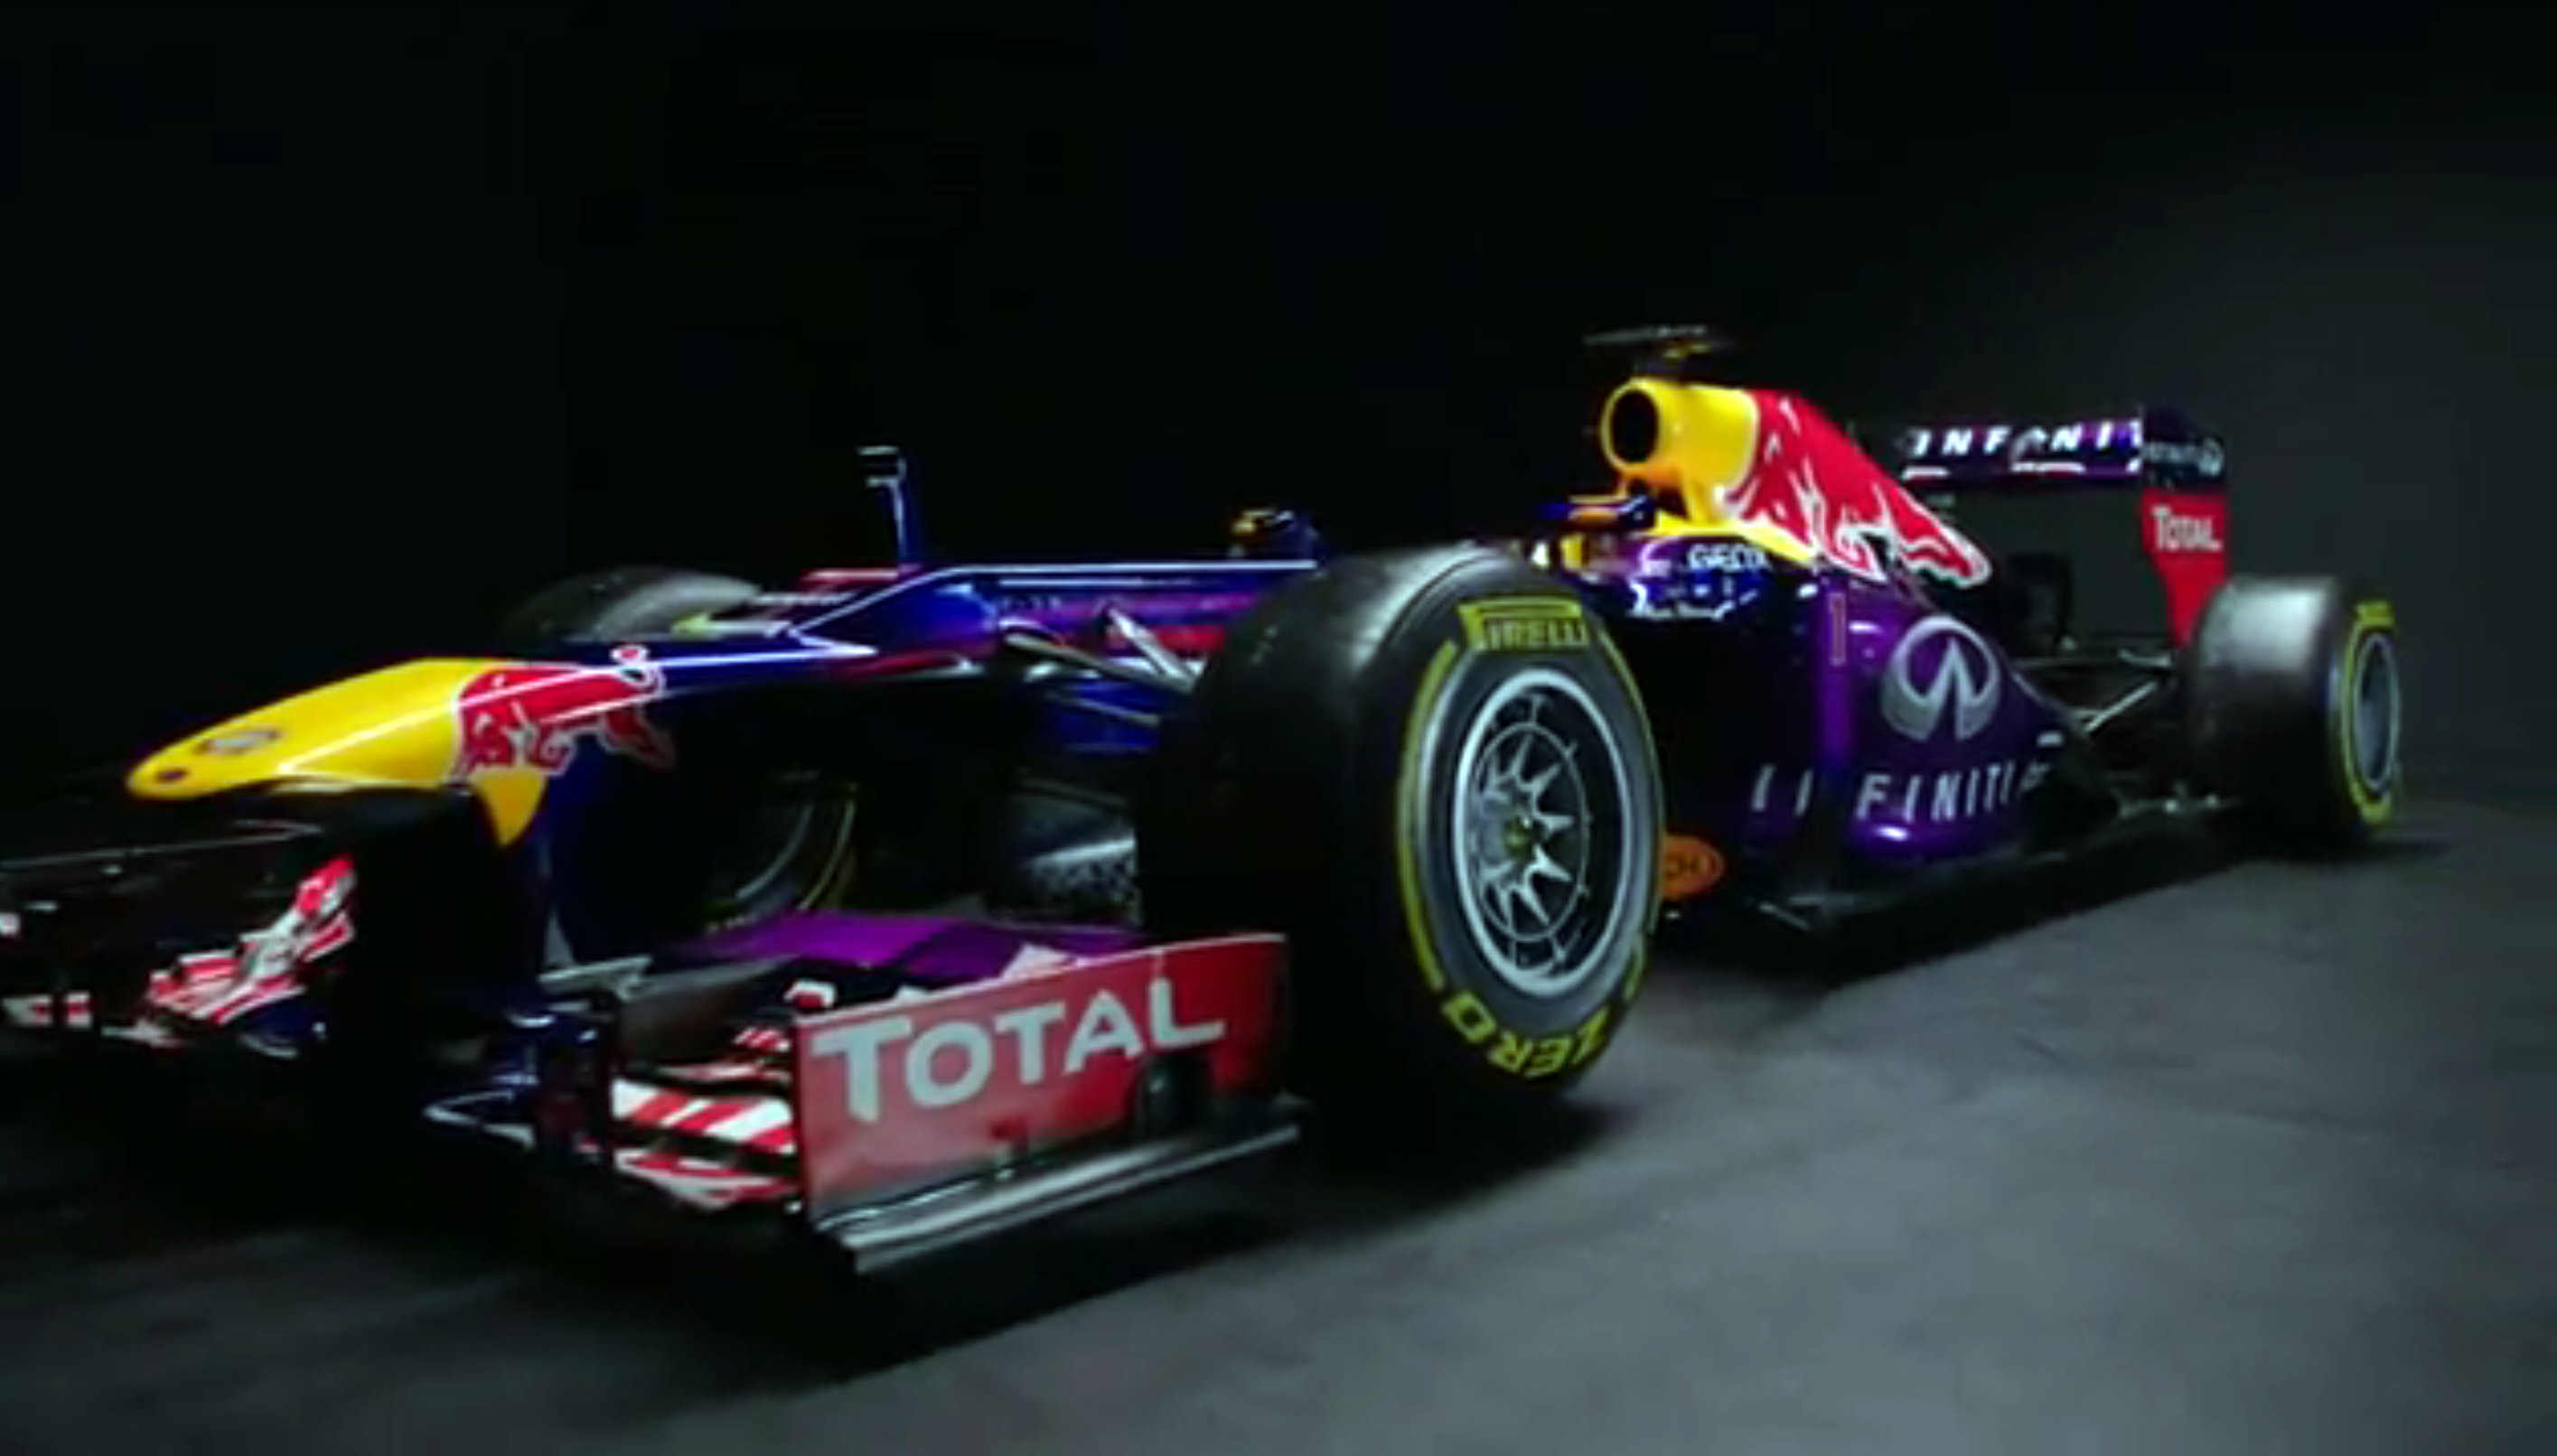 Pictures Of The New Purple Red Bull F1 Car Joeblogsf1